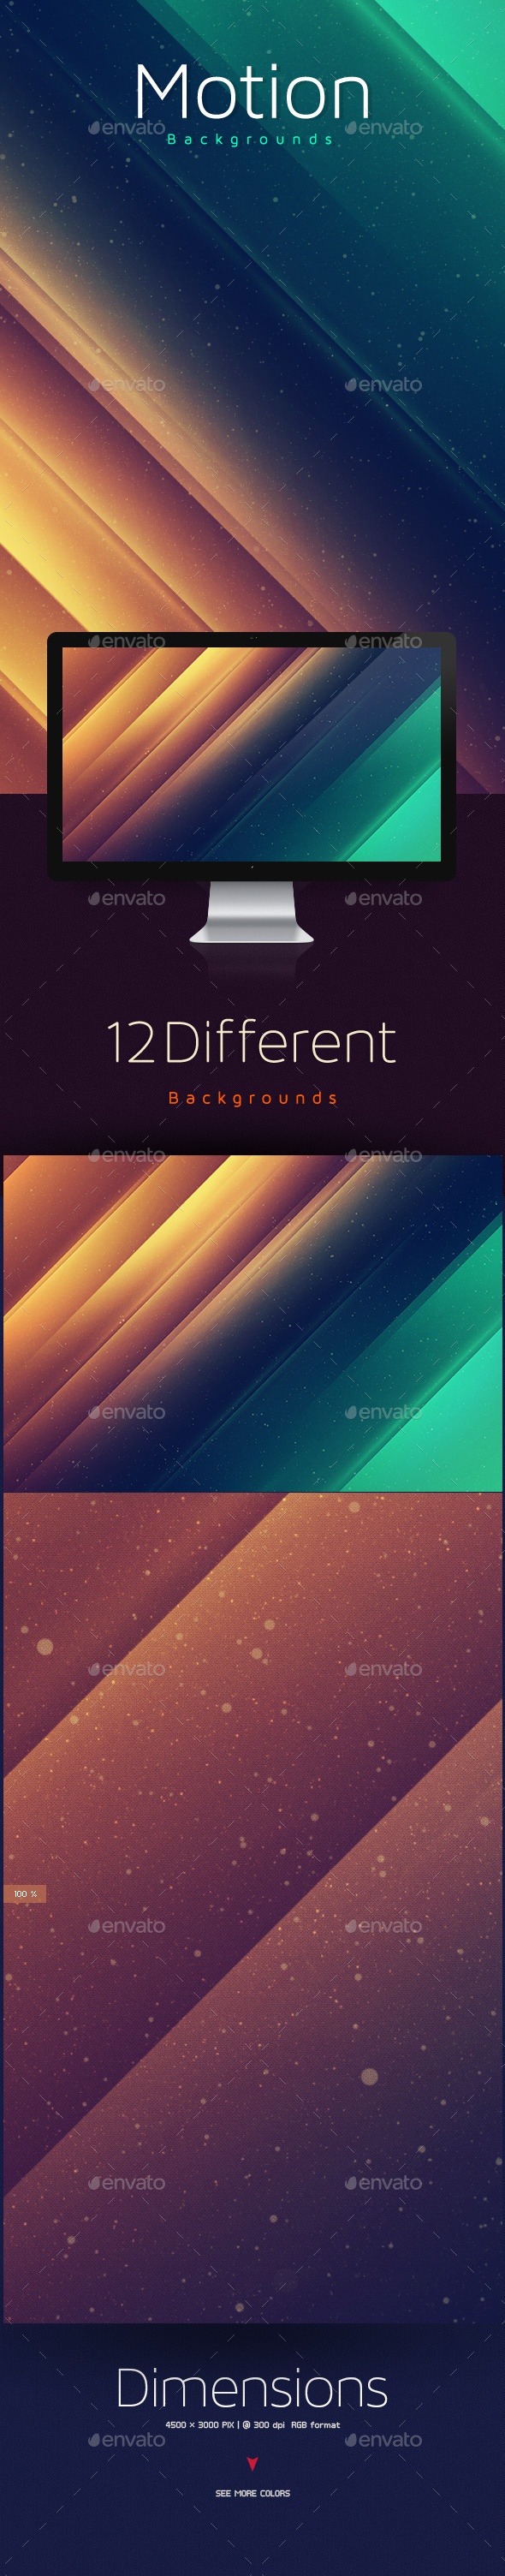 GraphicRiver Motion Abstract Backgrounds 10199443